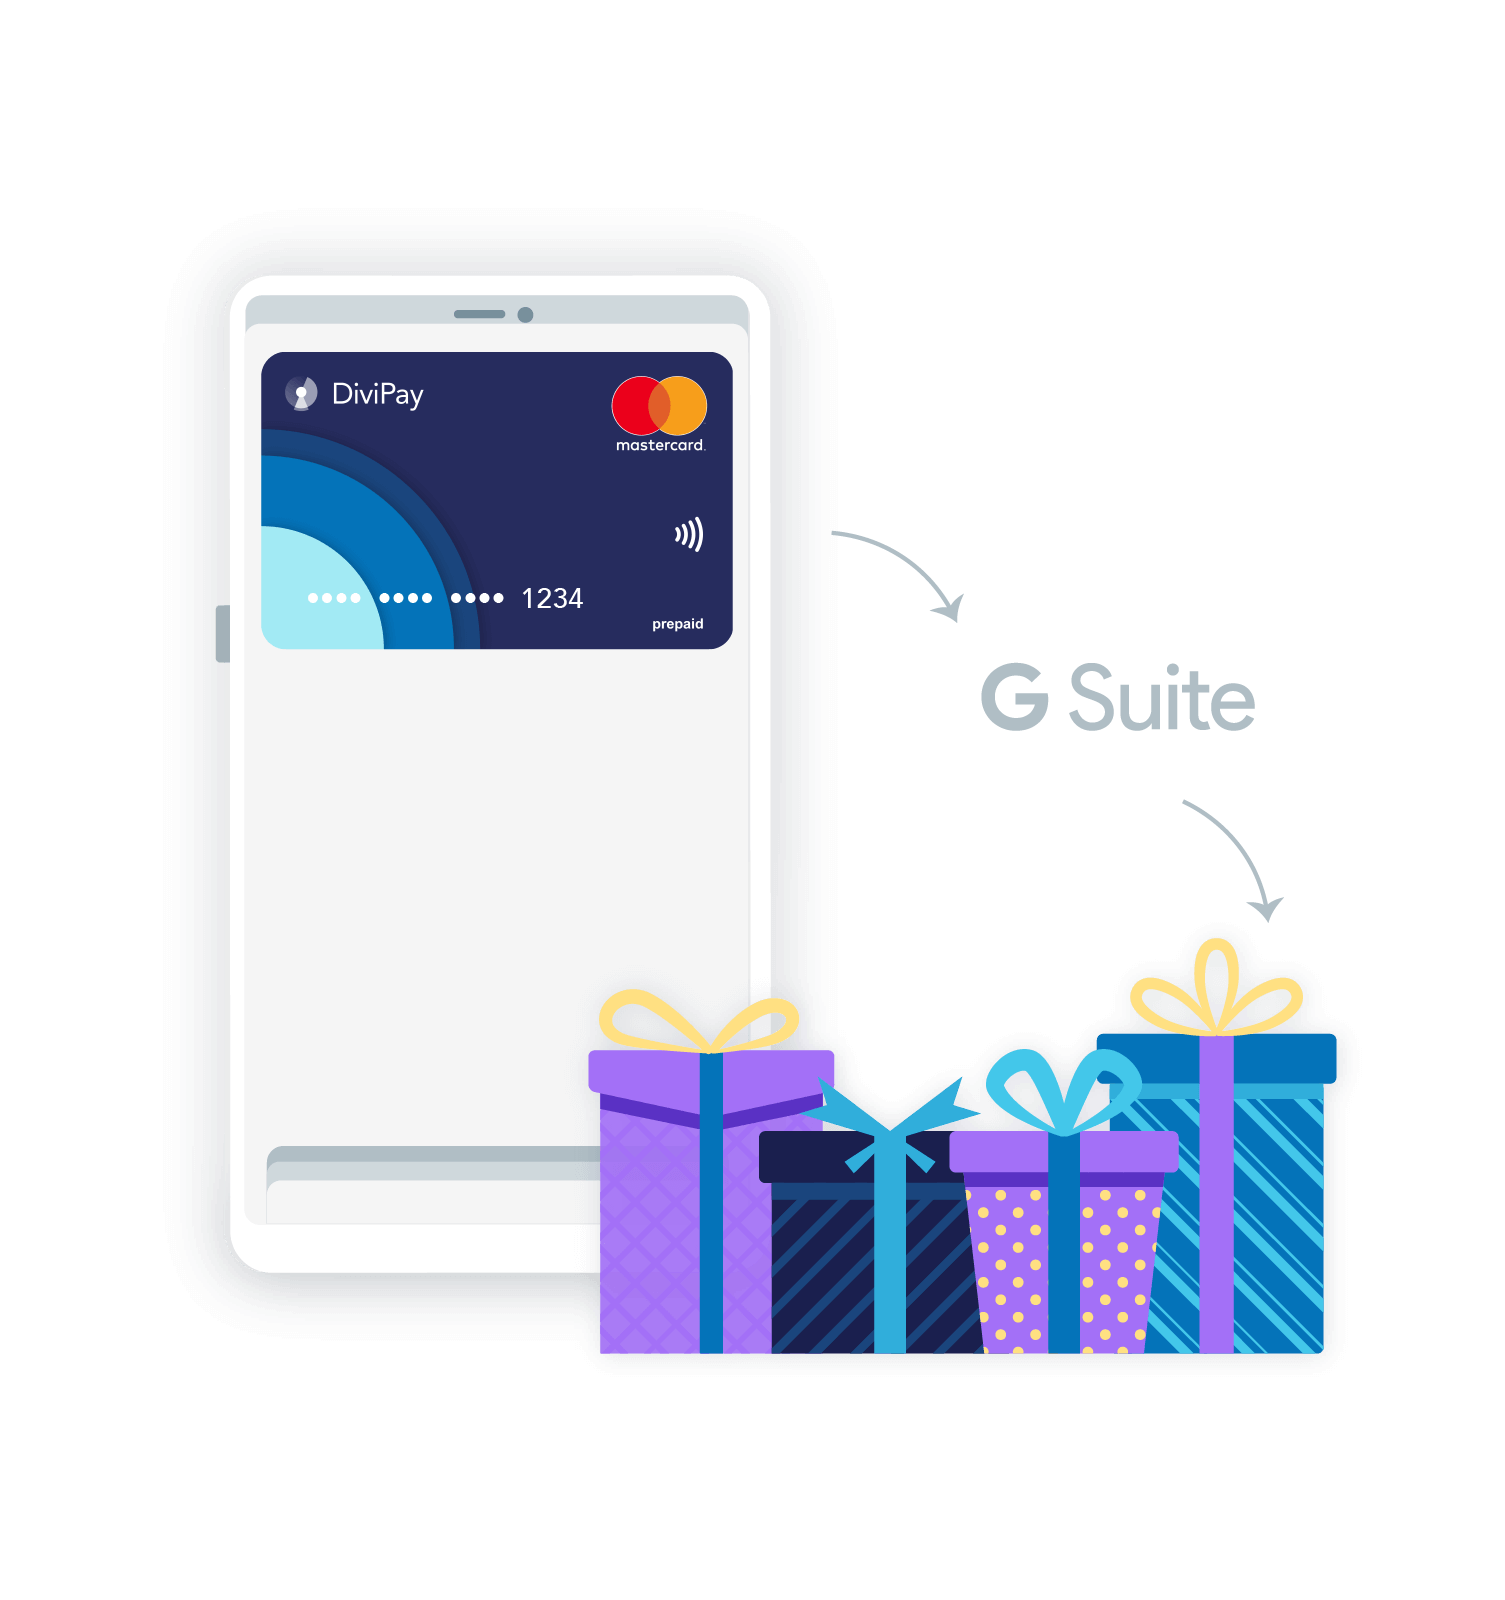 G Suite discounts with DiviPay